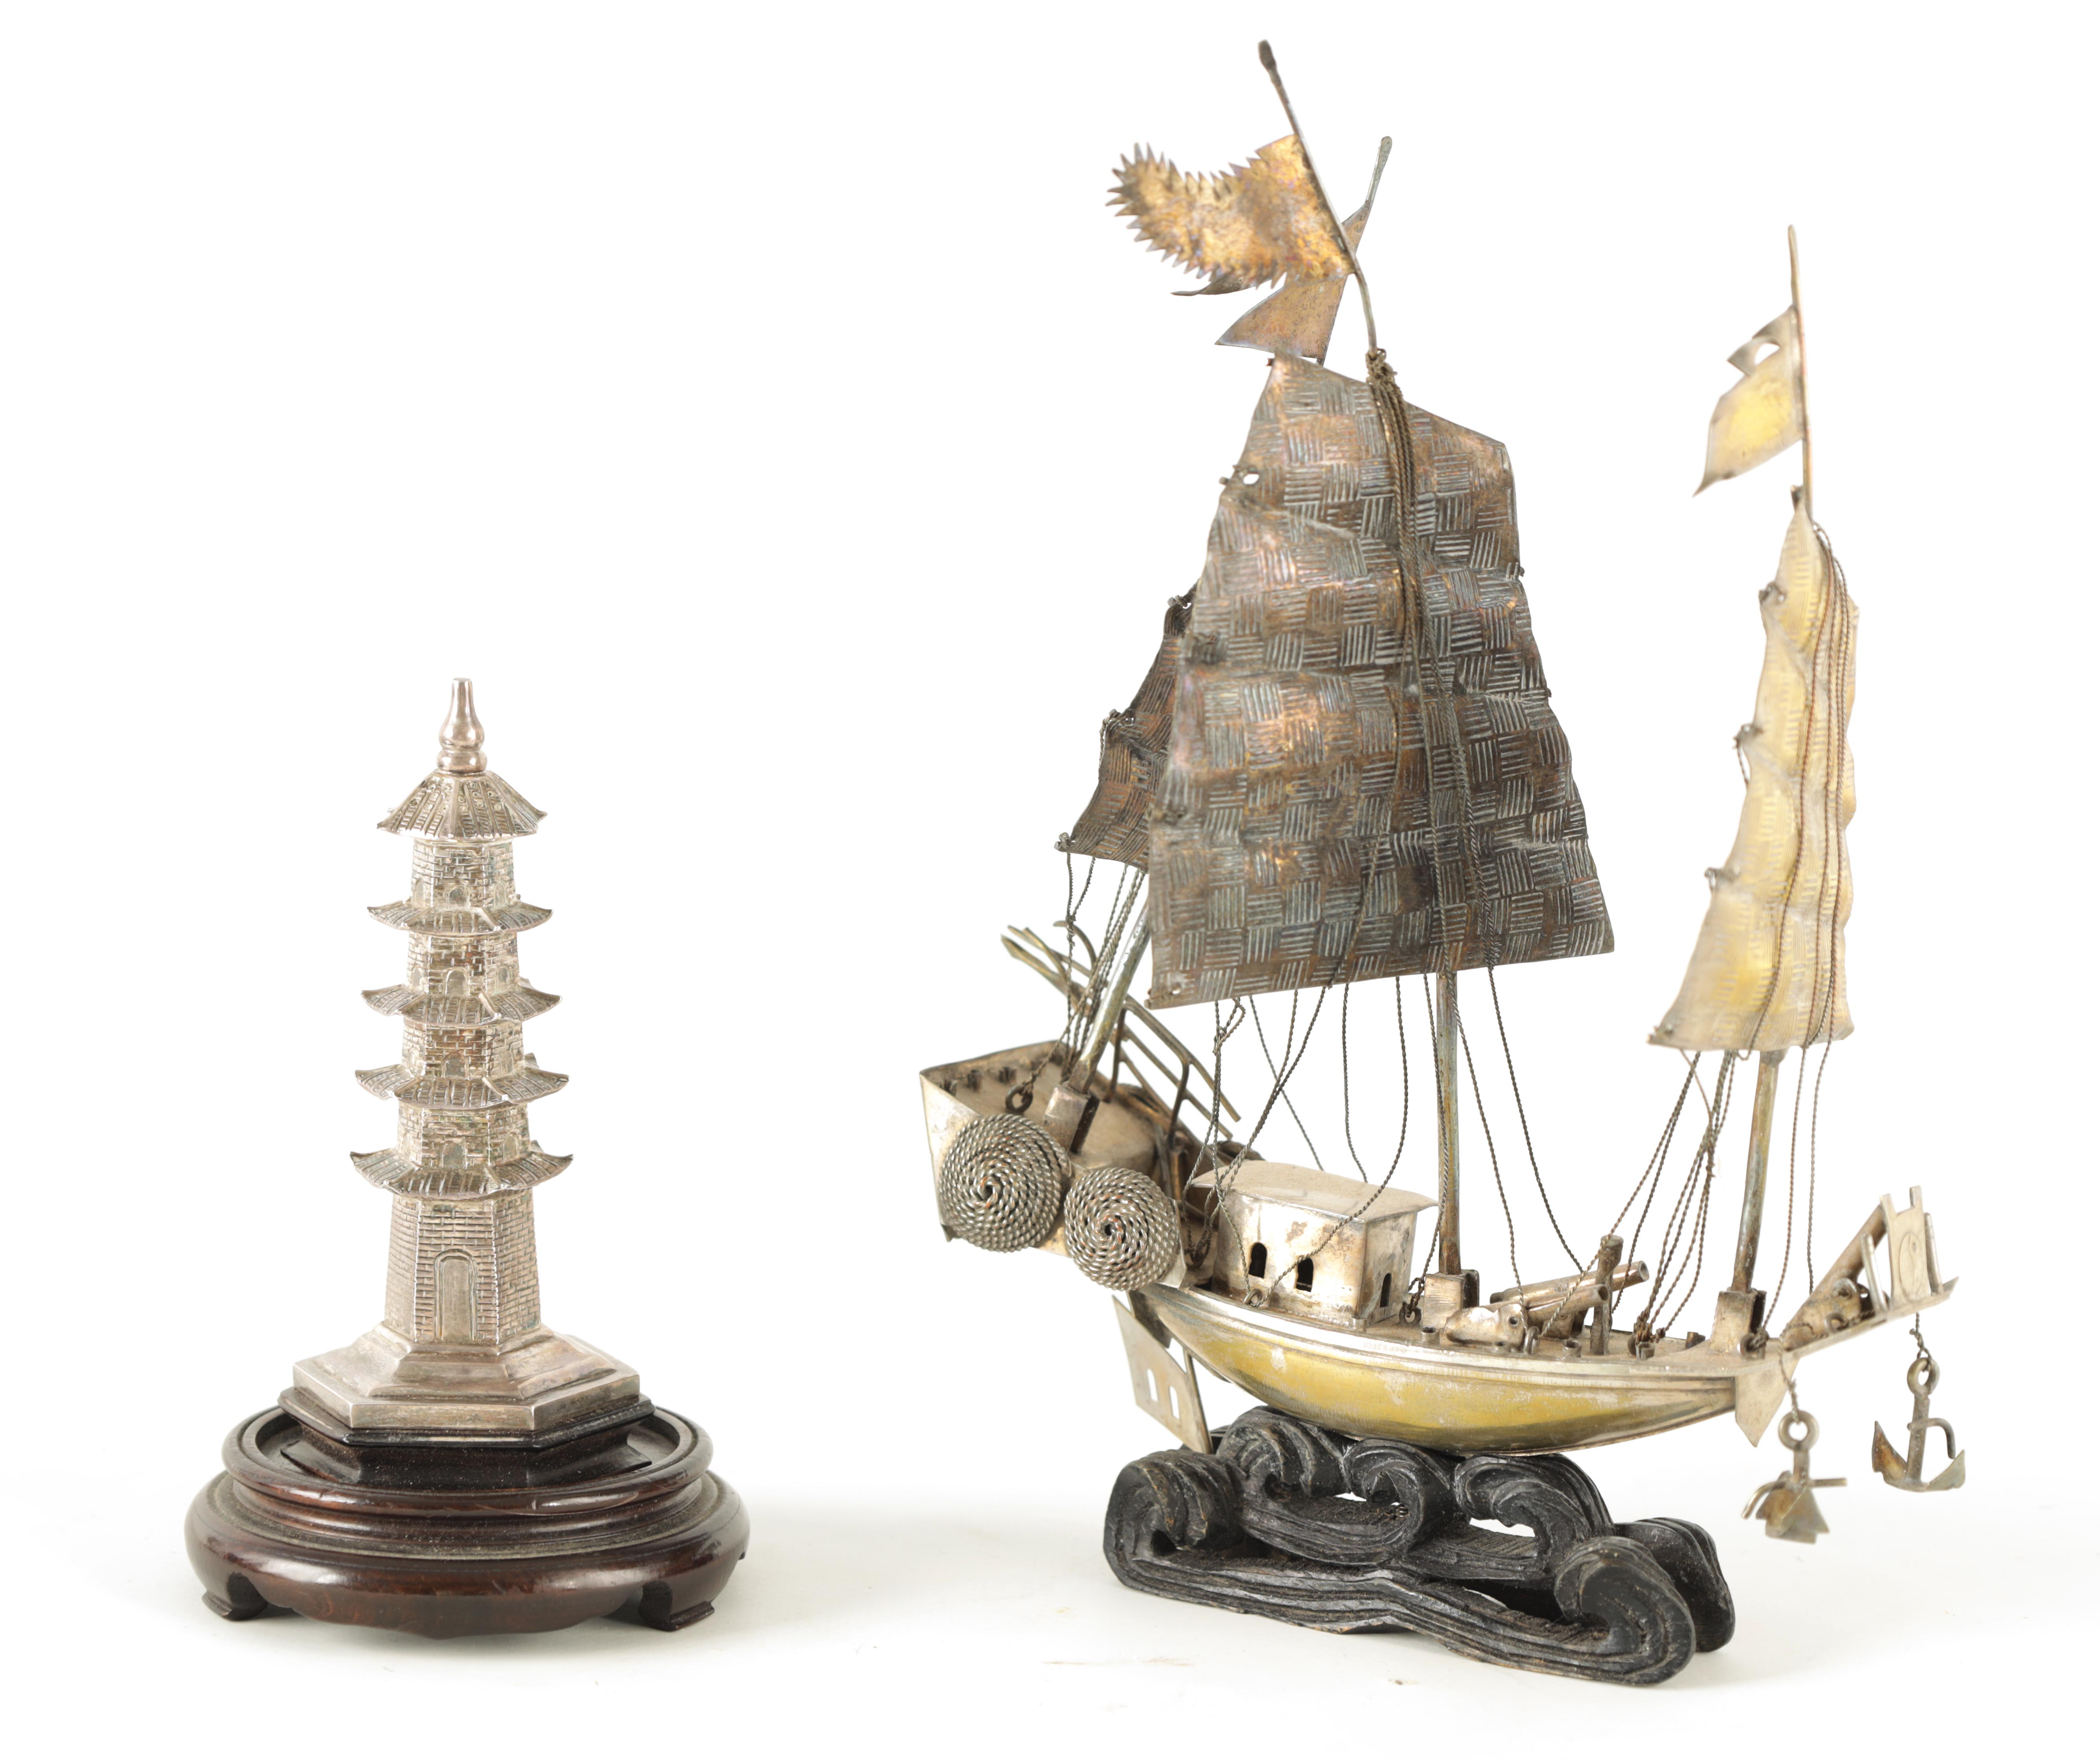 TWO 19TH CENTURY CHINESE SILVER MODELS comprising a pagoda-shaped tower on a hardwood base 13.5cm